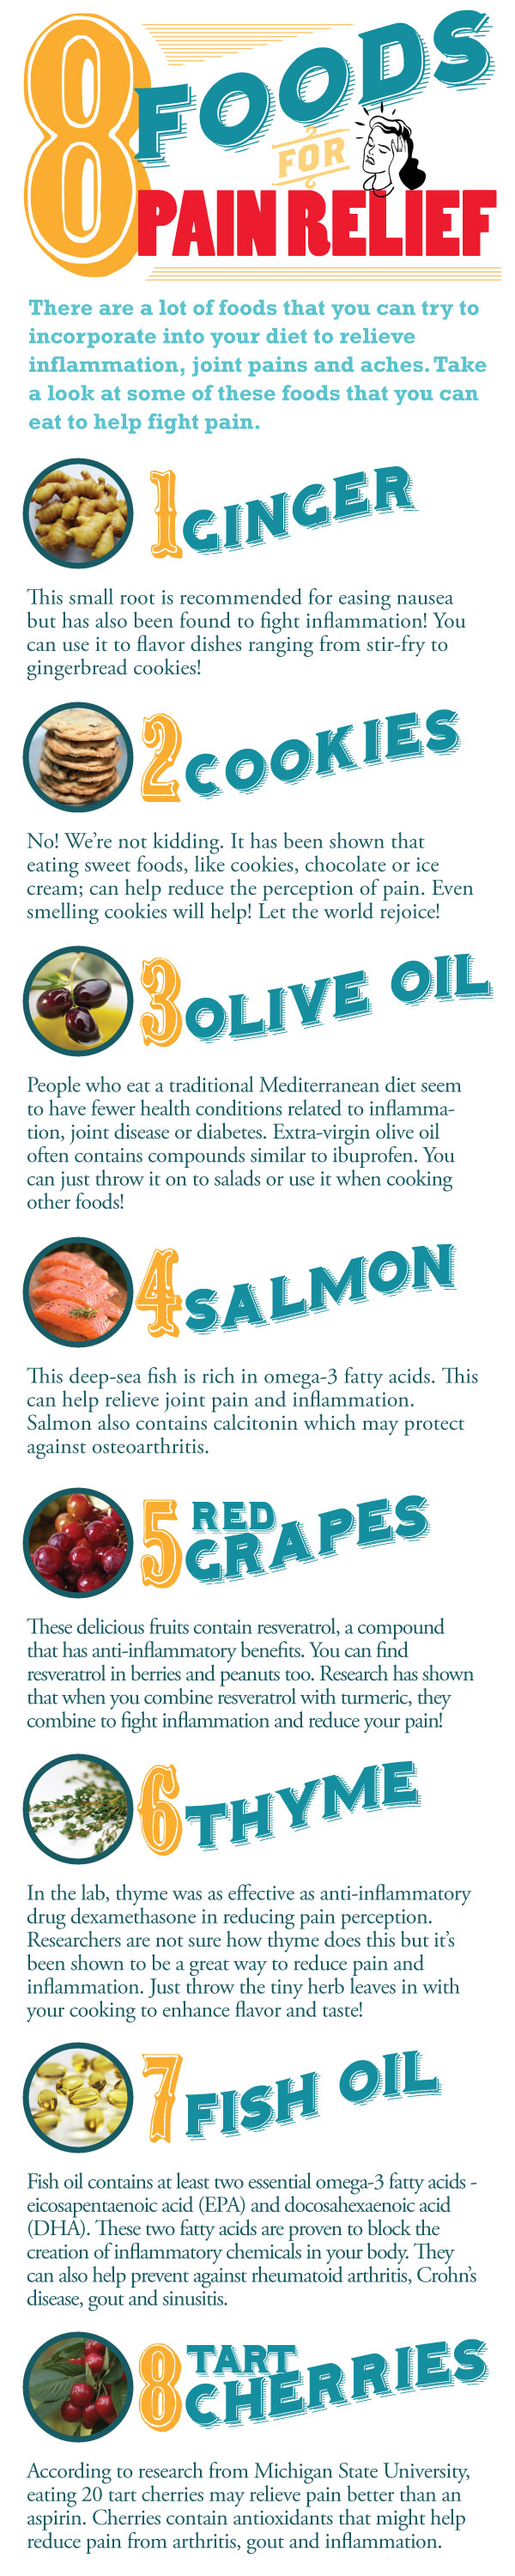 8 Foods To Relieve Pain Infographic